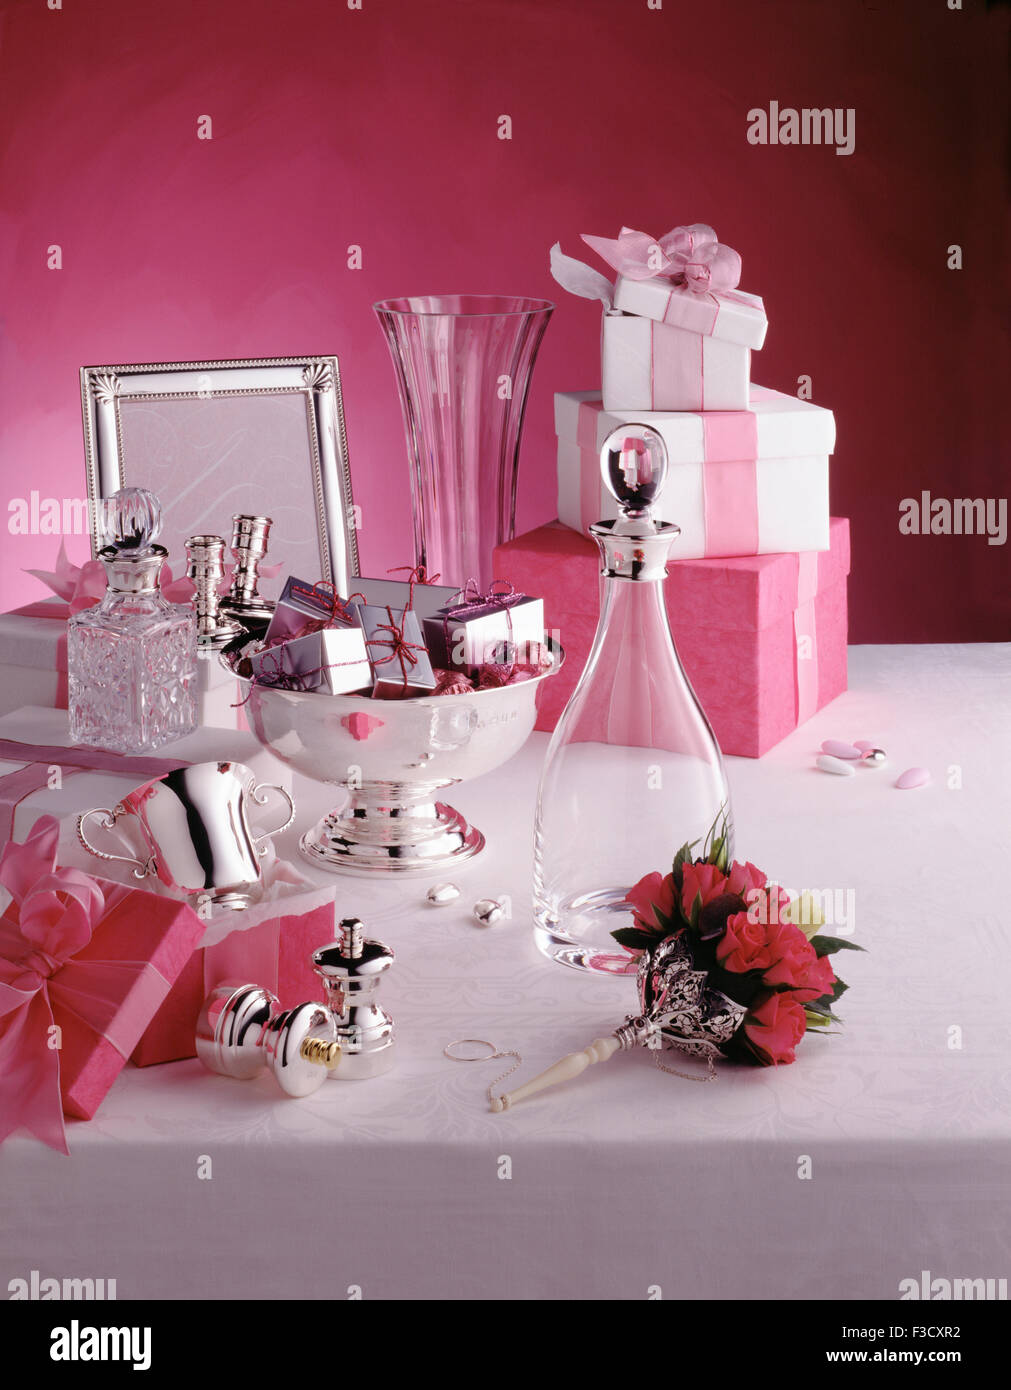 Wedding Gifts Stock Photos & Wedding Gifts Stock Images - Alamy